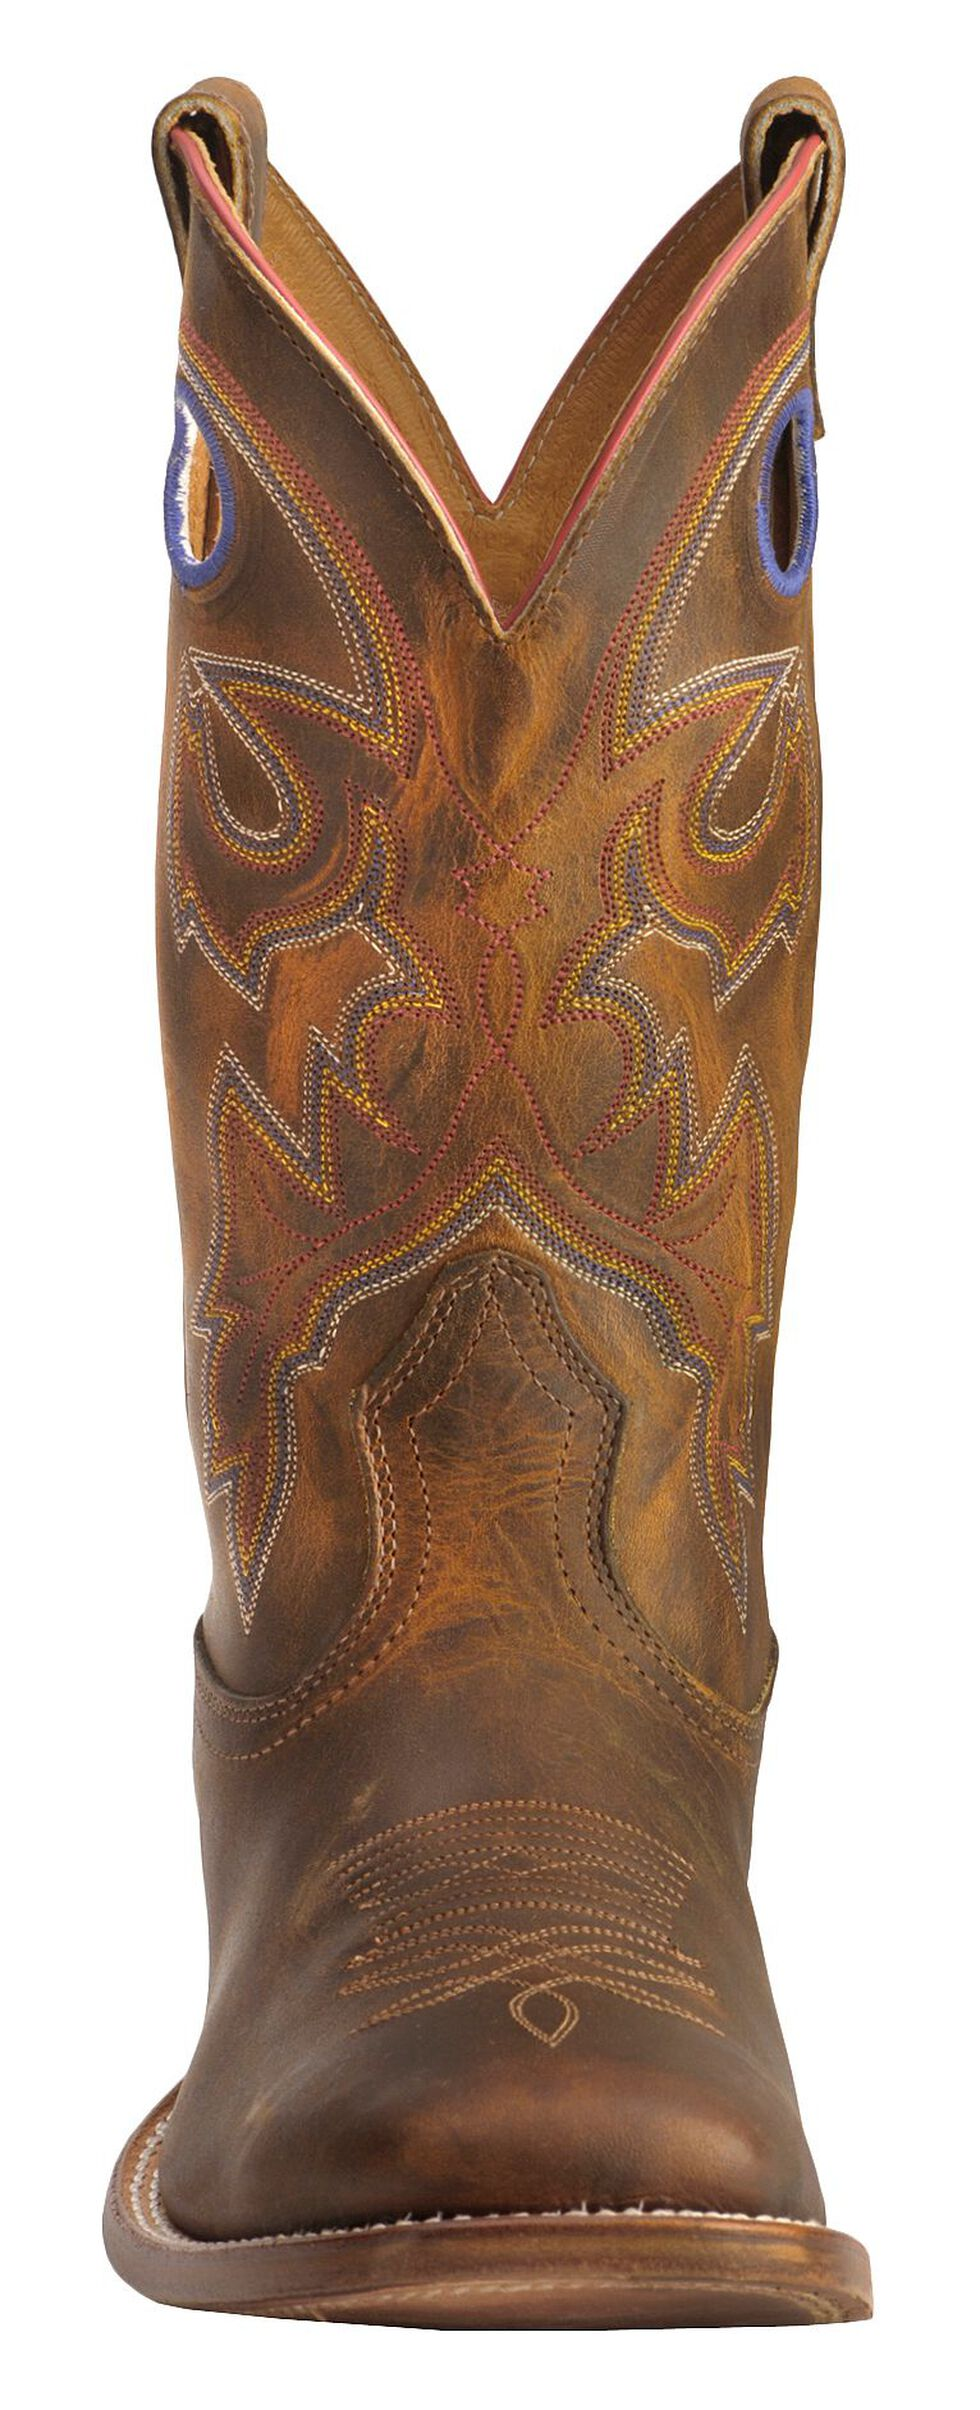 Boulet Stockman Cowboy Boots - Wide Square Toe, Tan, hi-res